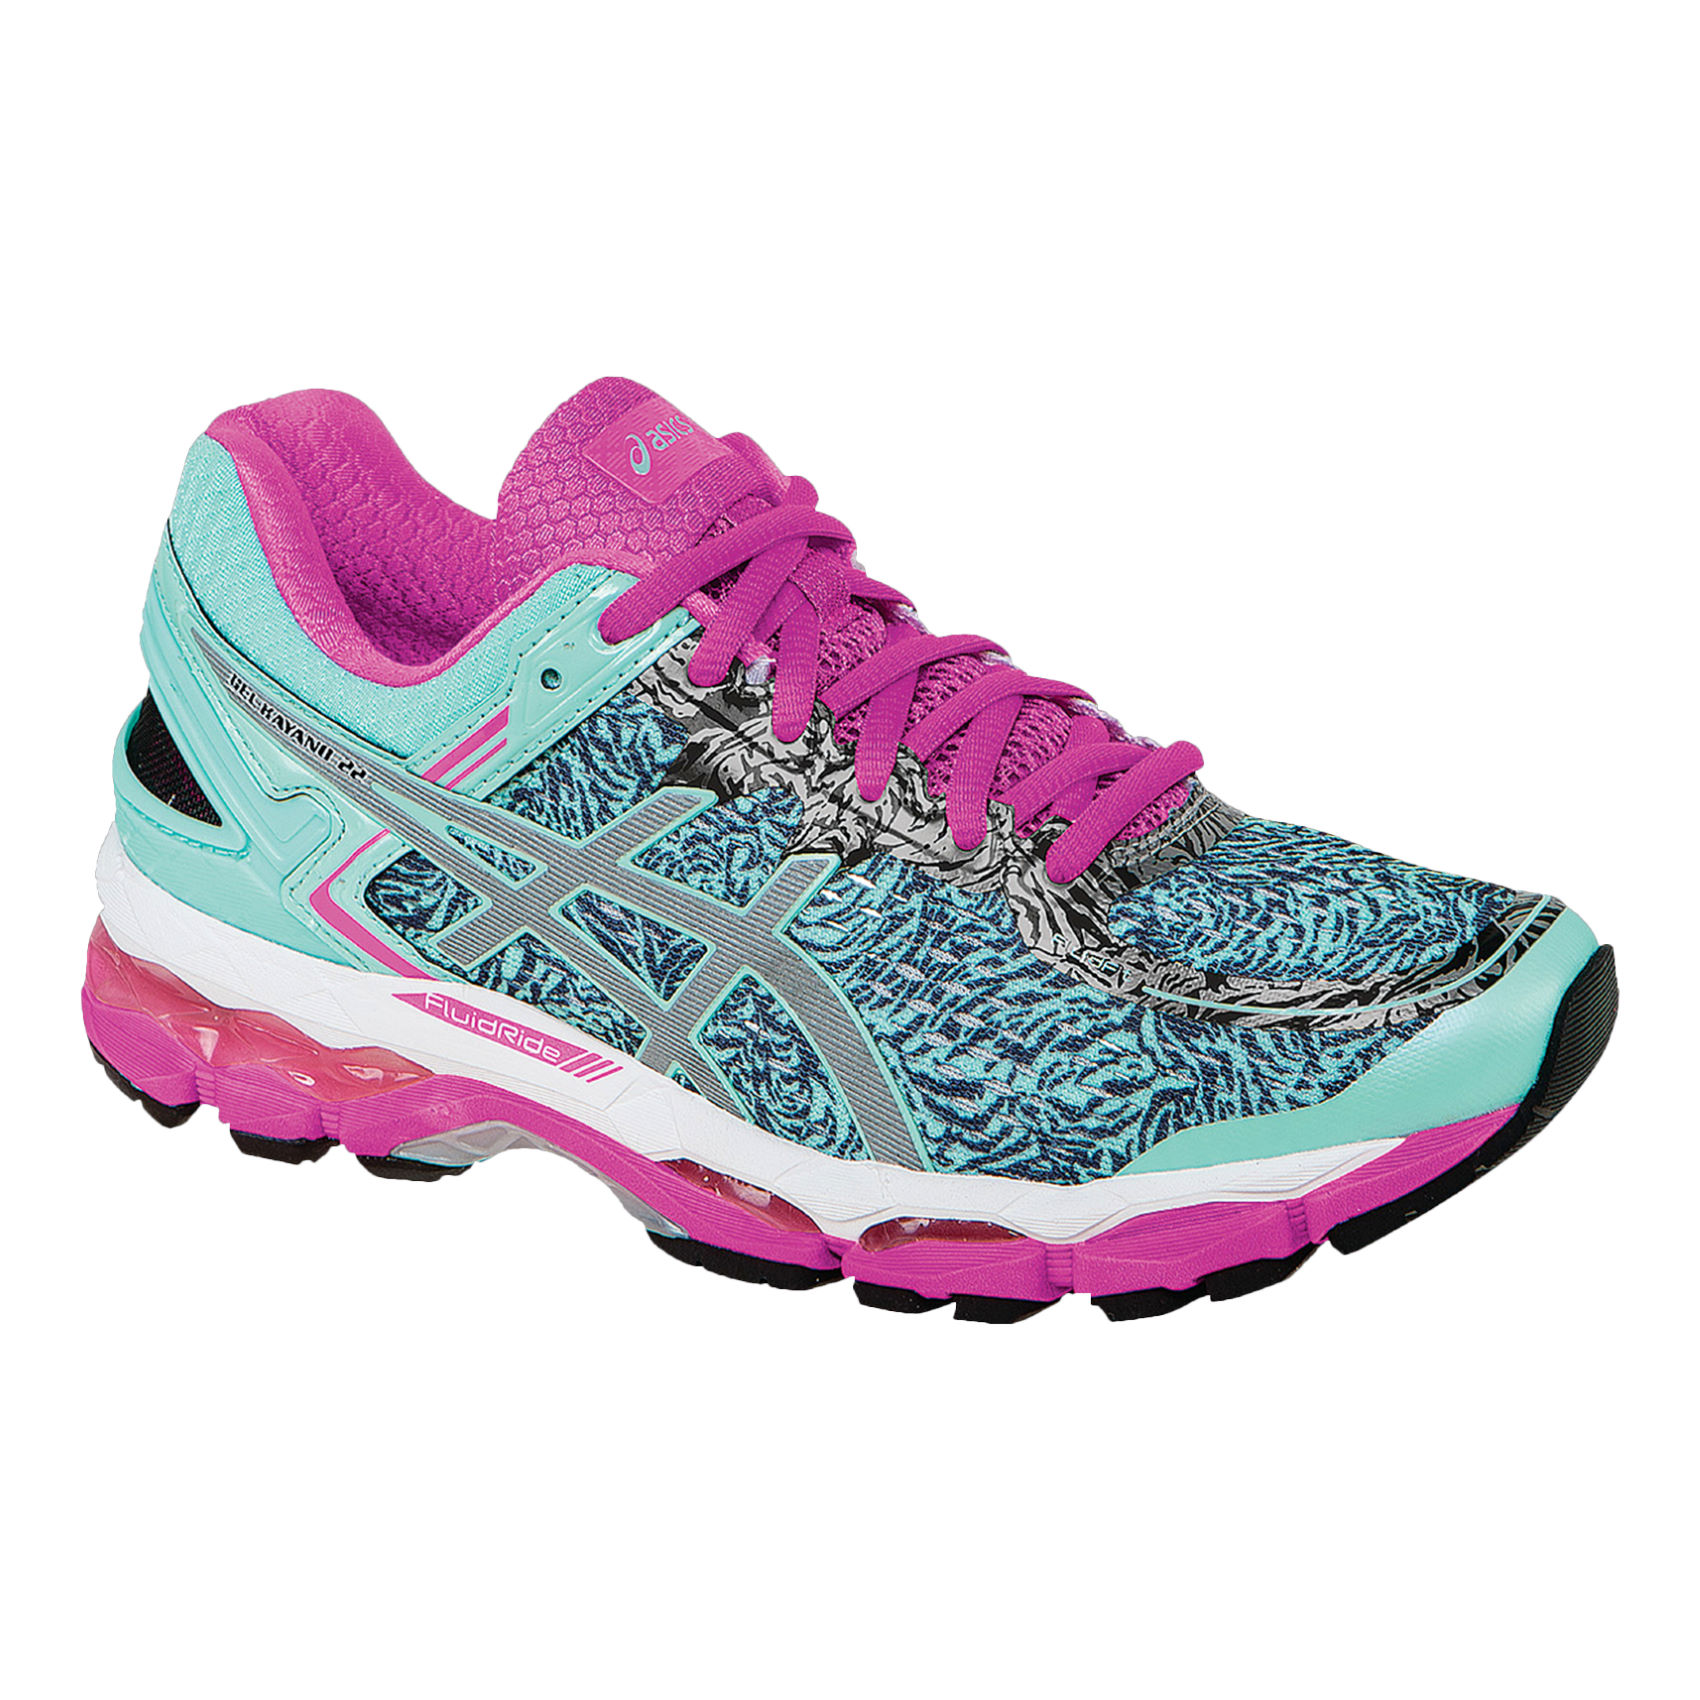 wiggle asics women 39 s gel kayano 22 lite show shoes aw15 stability running shoes. Black Bedroom Furniture Sets. Home Design Ideas